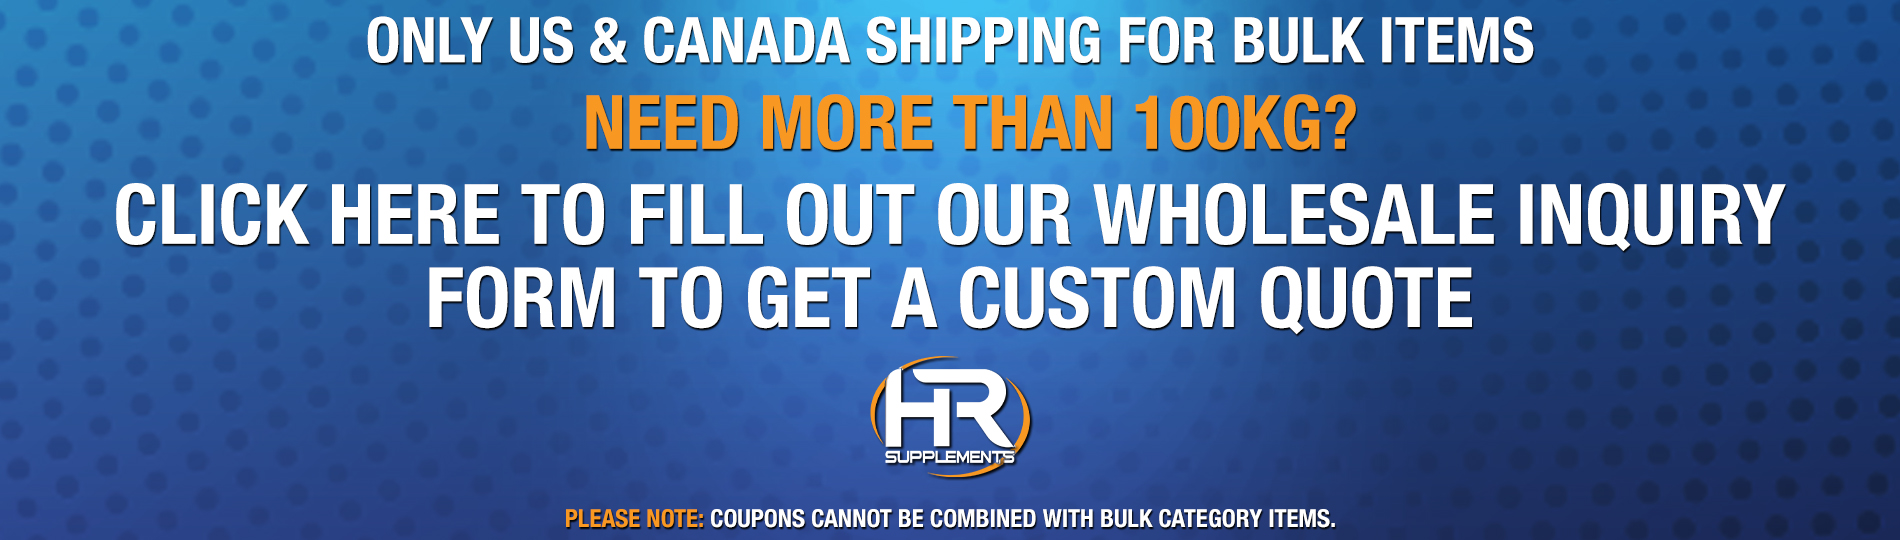 HRsupplements HR supplements bulk wholesale inquiry form link